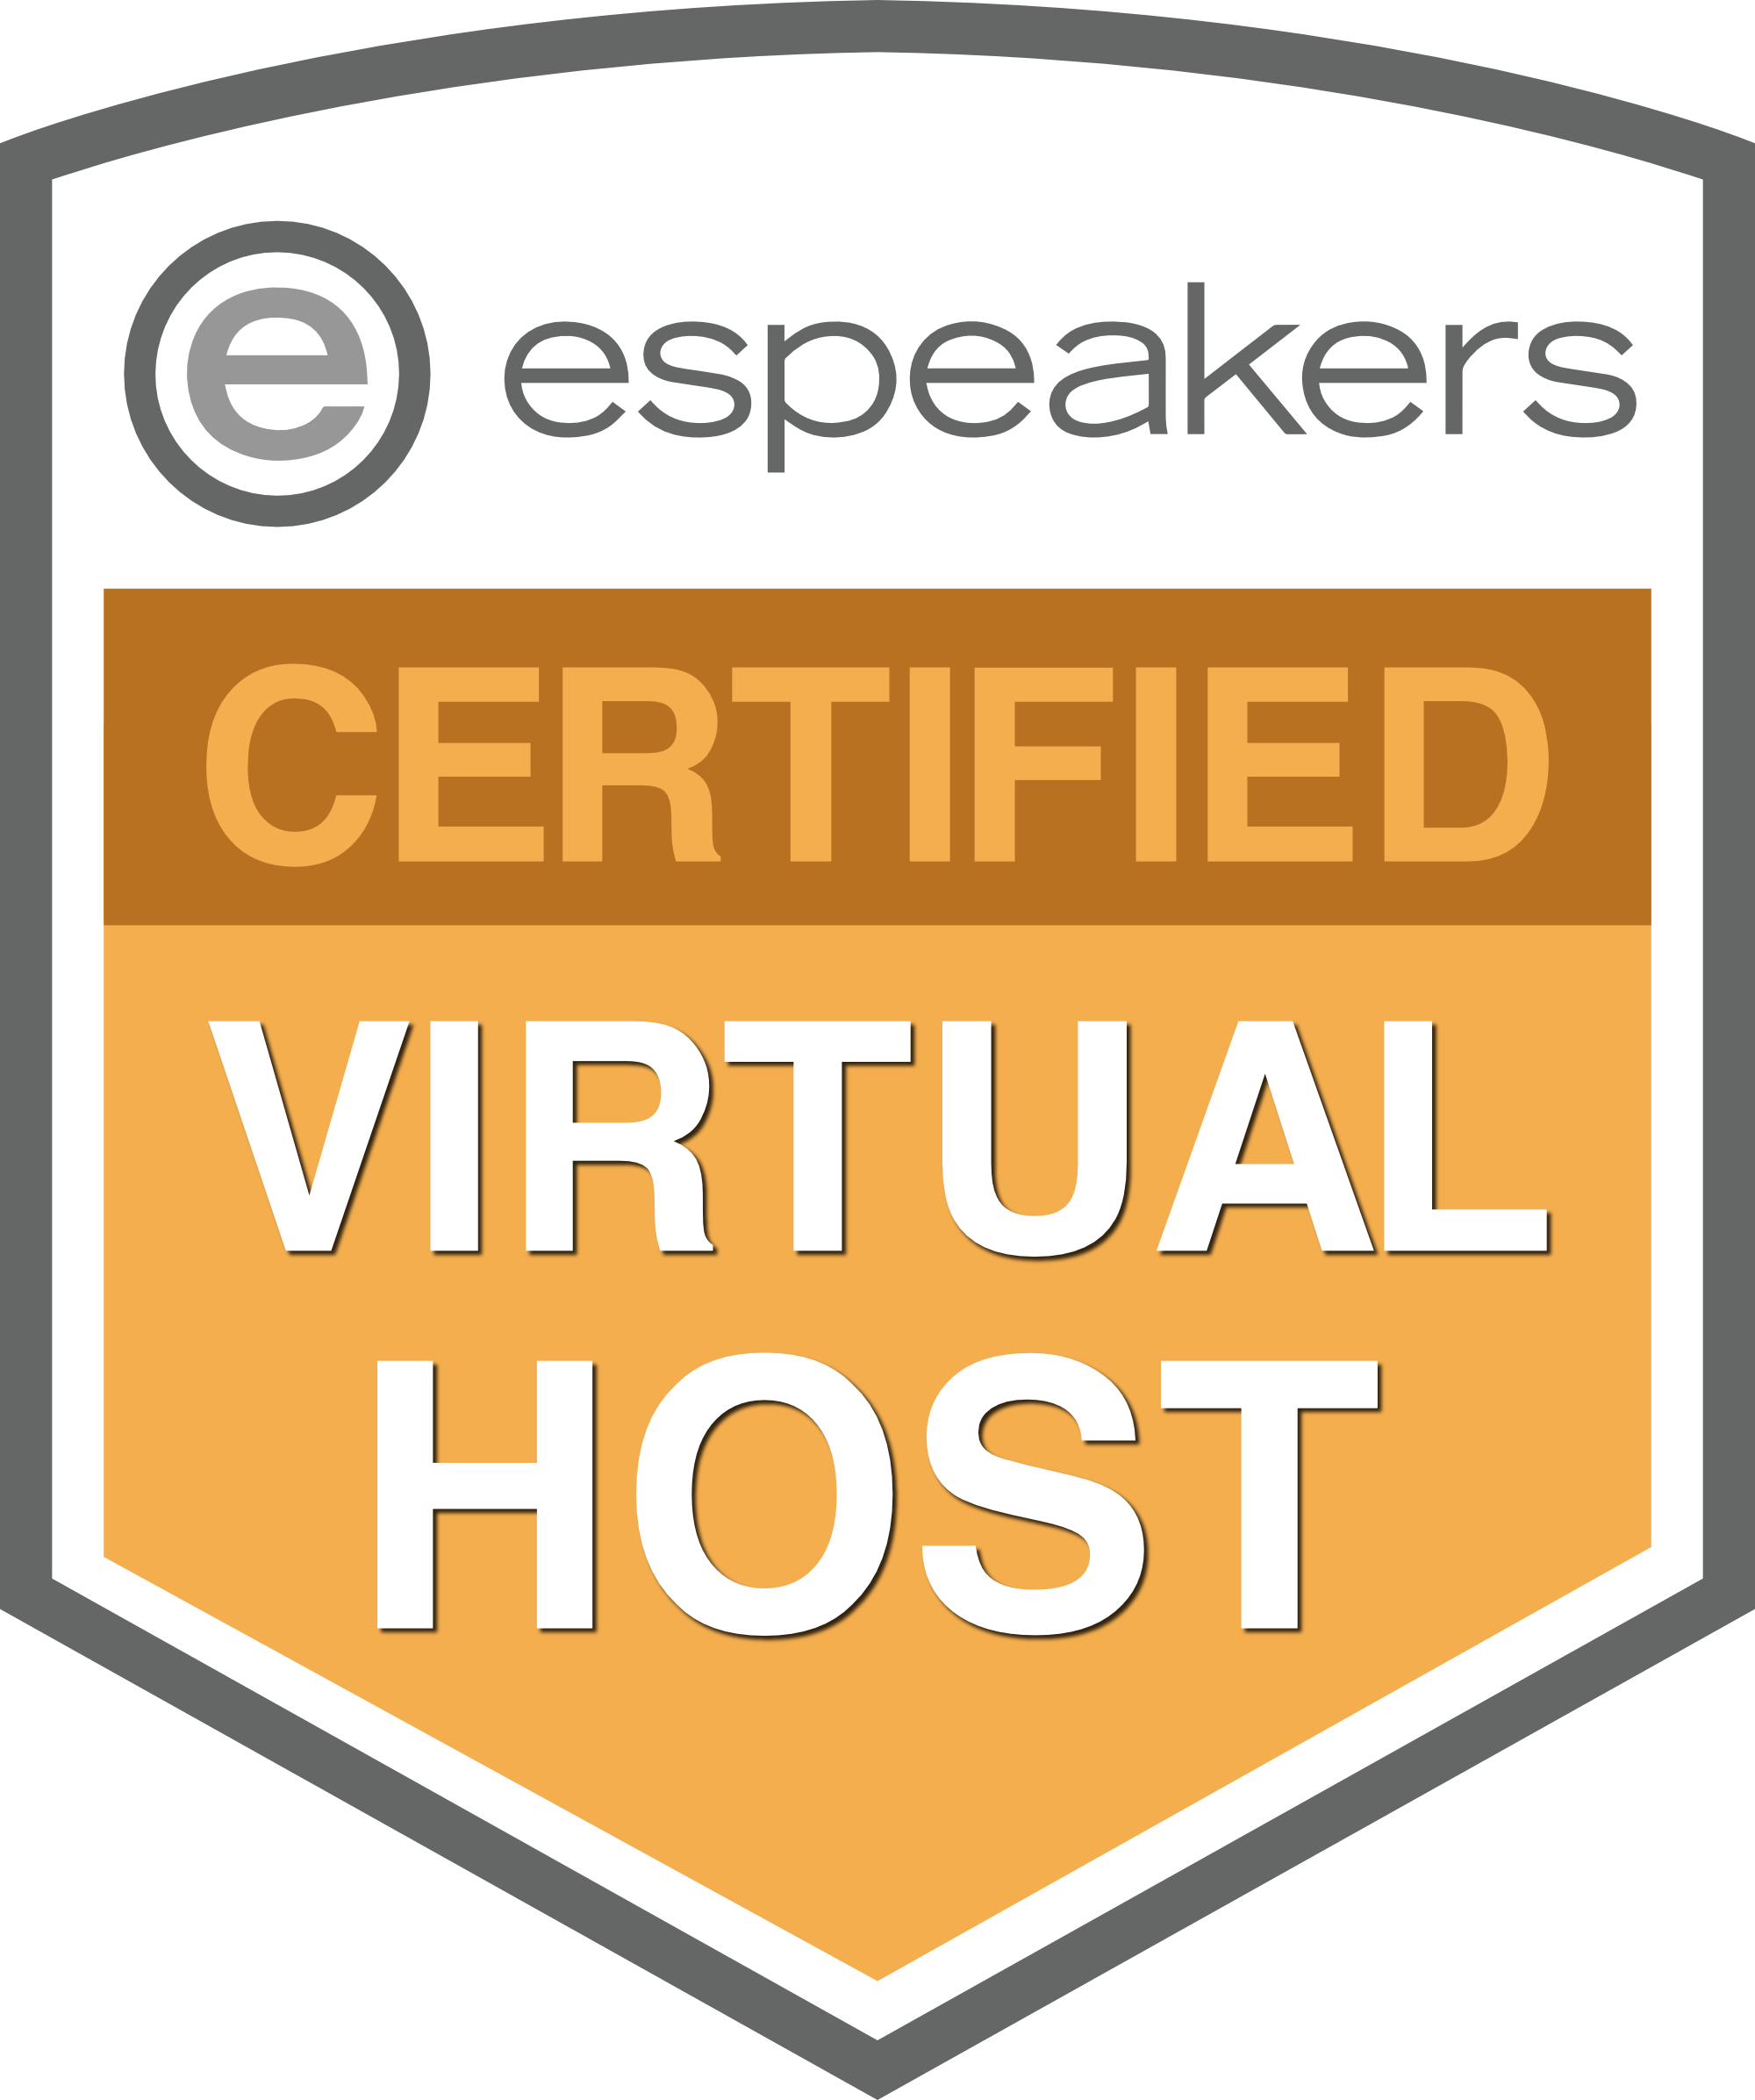 eSpeakers Certified Virtual Host